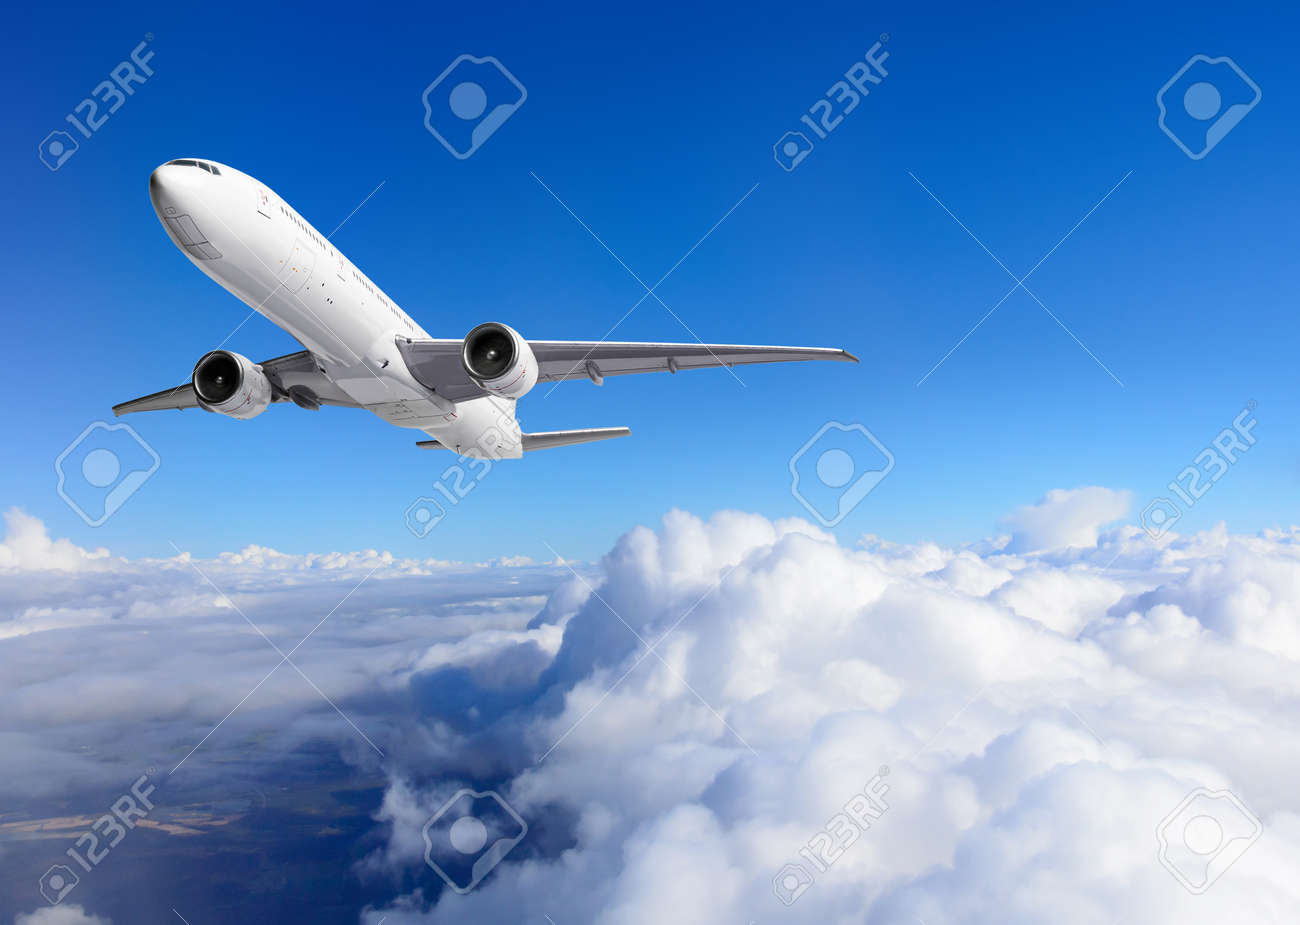 Airplane flying above clouds on blue sky background - 171548536